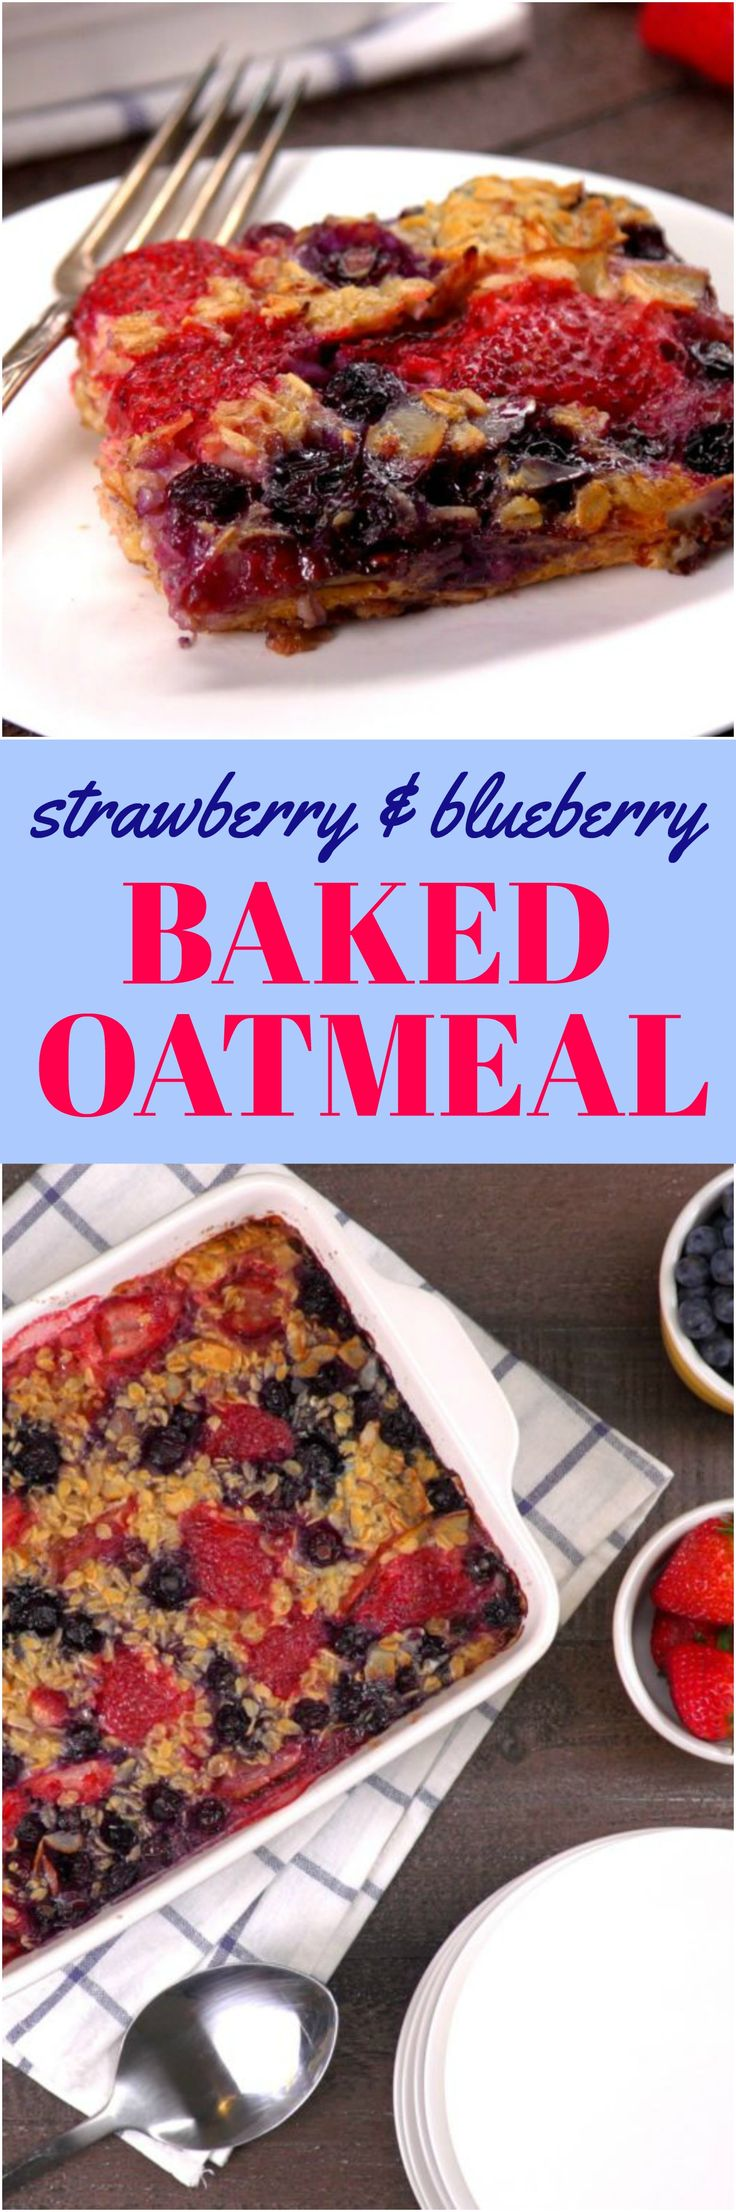 This easy breakfast bake is warmly spiced with brown sugar and cinnamon and filled with wholesome rolled oats, toasty almonds, and juicy berries. Not a morning person? Do this as a make-ahead breakfast and all you have to do is re-heat it in the A.M.